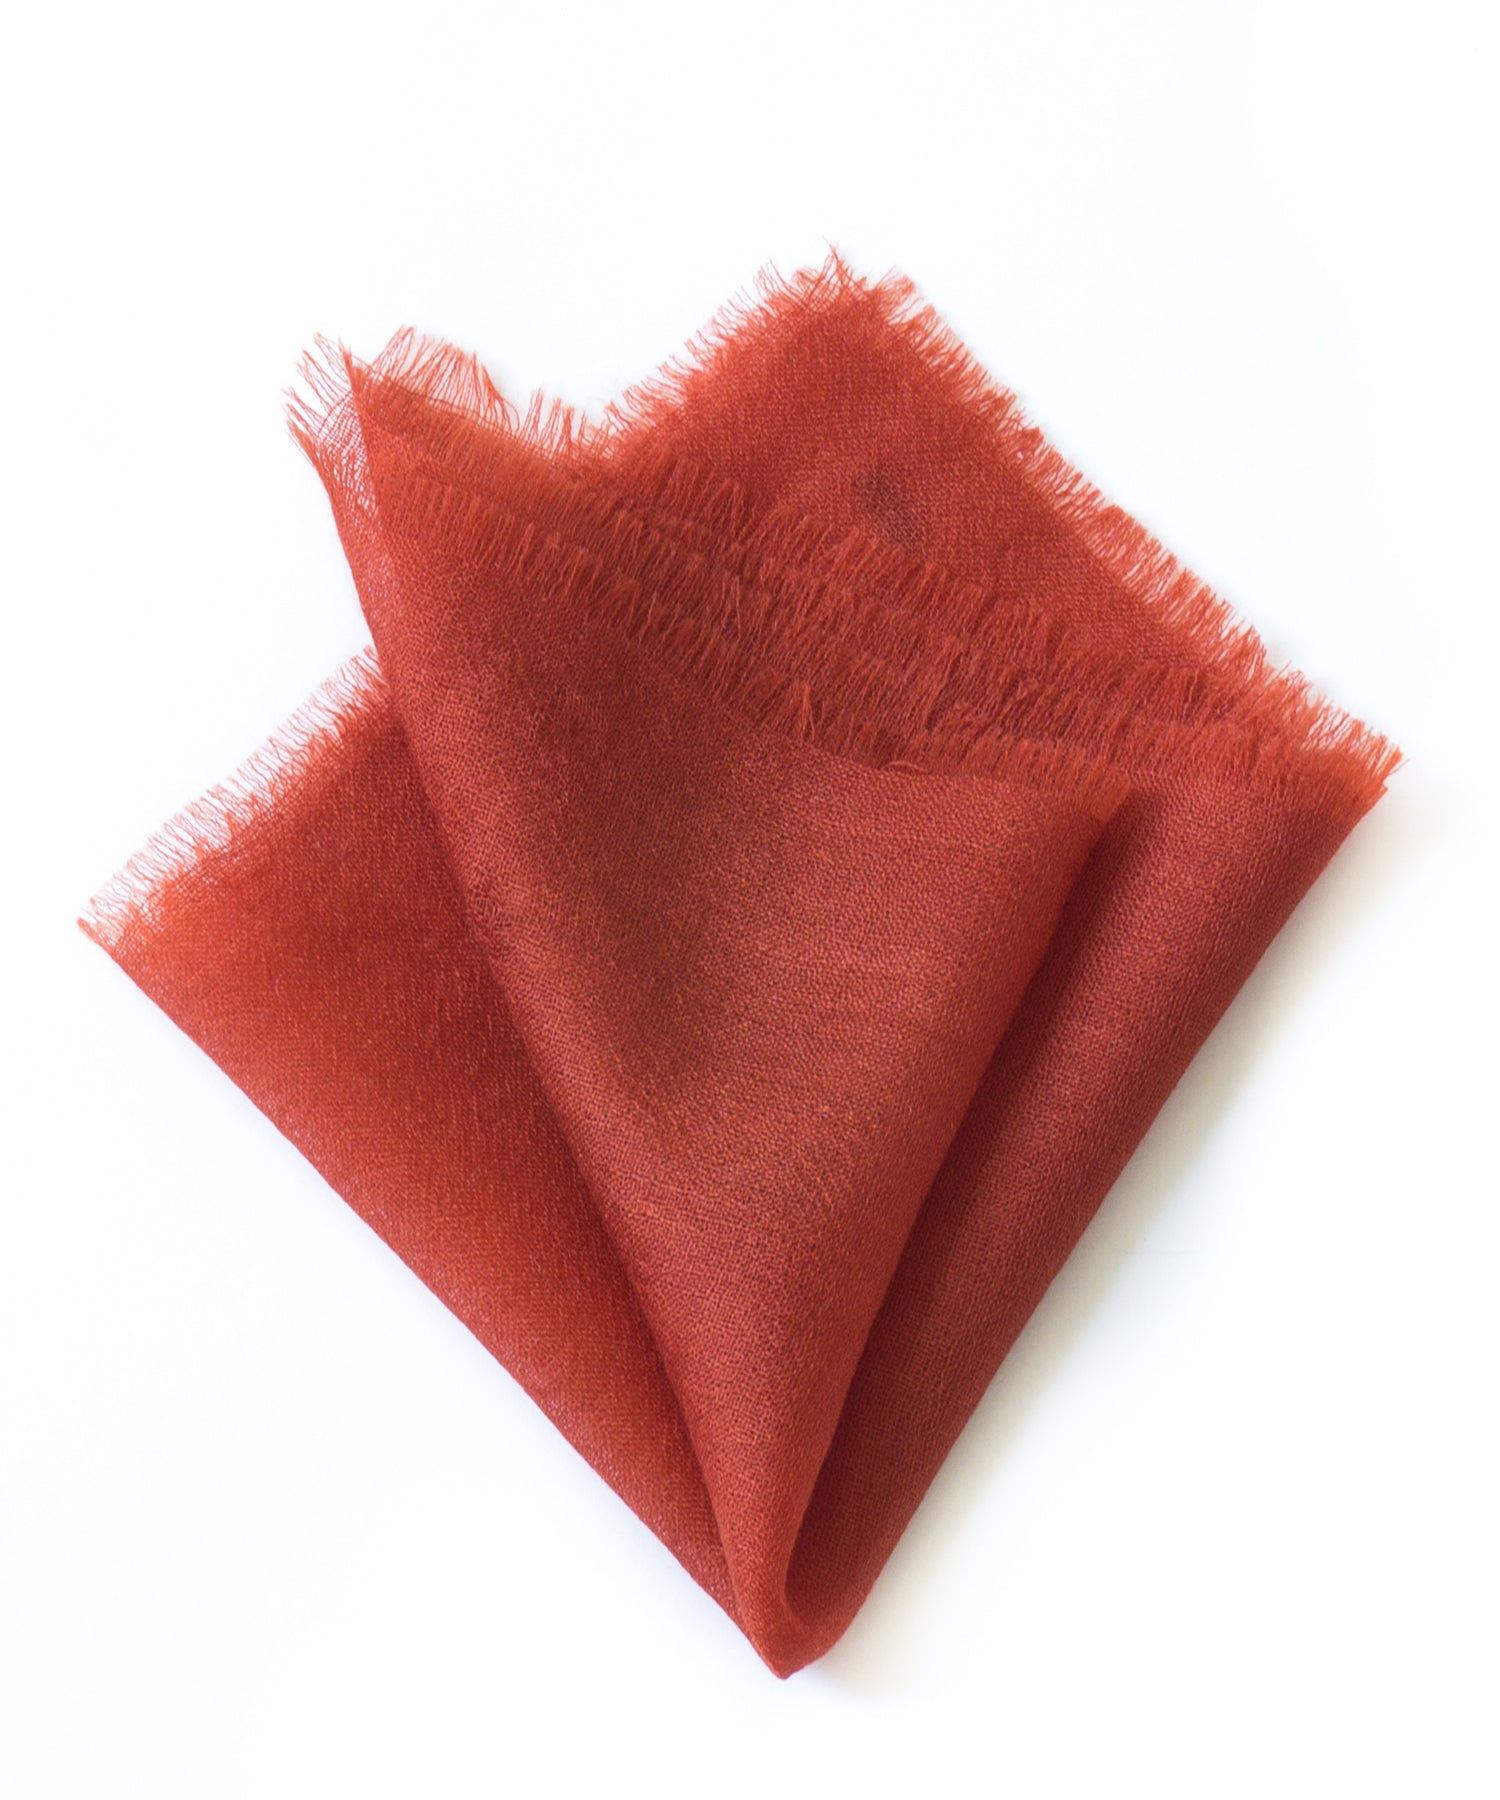 From The Road Marici Cashmere Pocket Square in Red